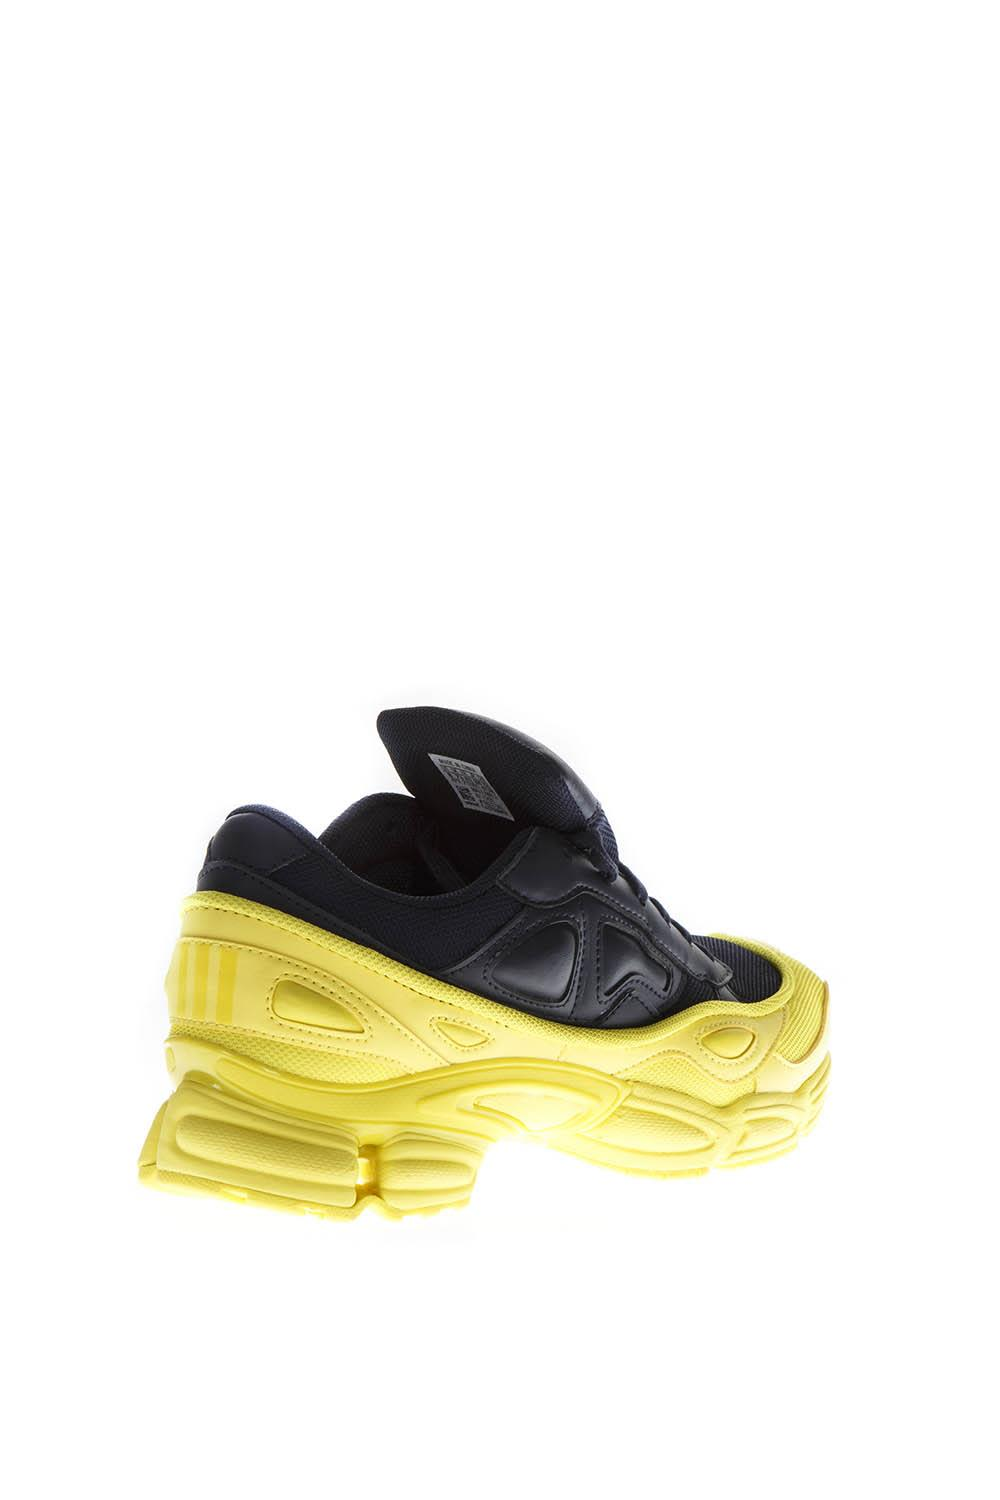 on sale dbb0d 6e639 ... Adidas By Raf Simons Rs Ozweego Yellow  Navy Blue Leather Sneakers -  Navyyellow ...